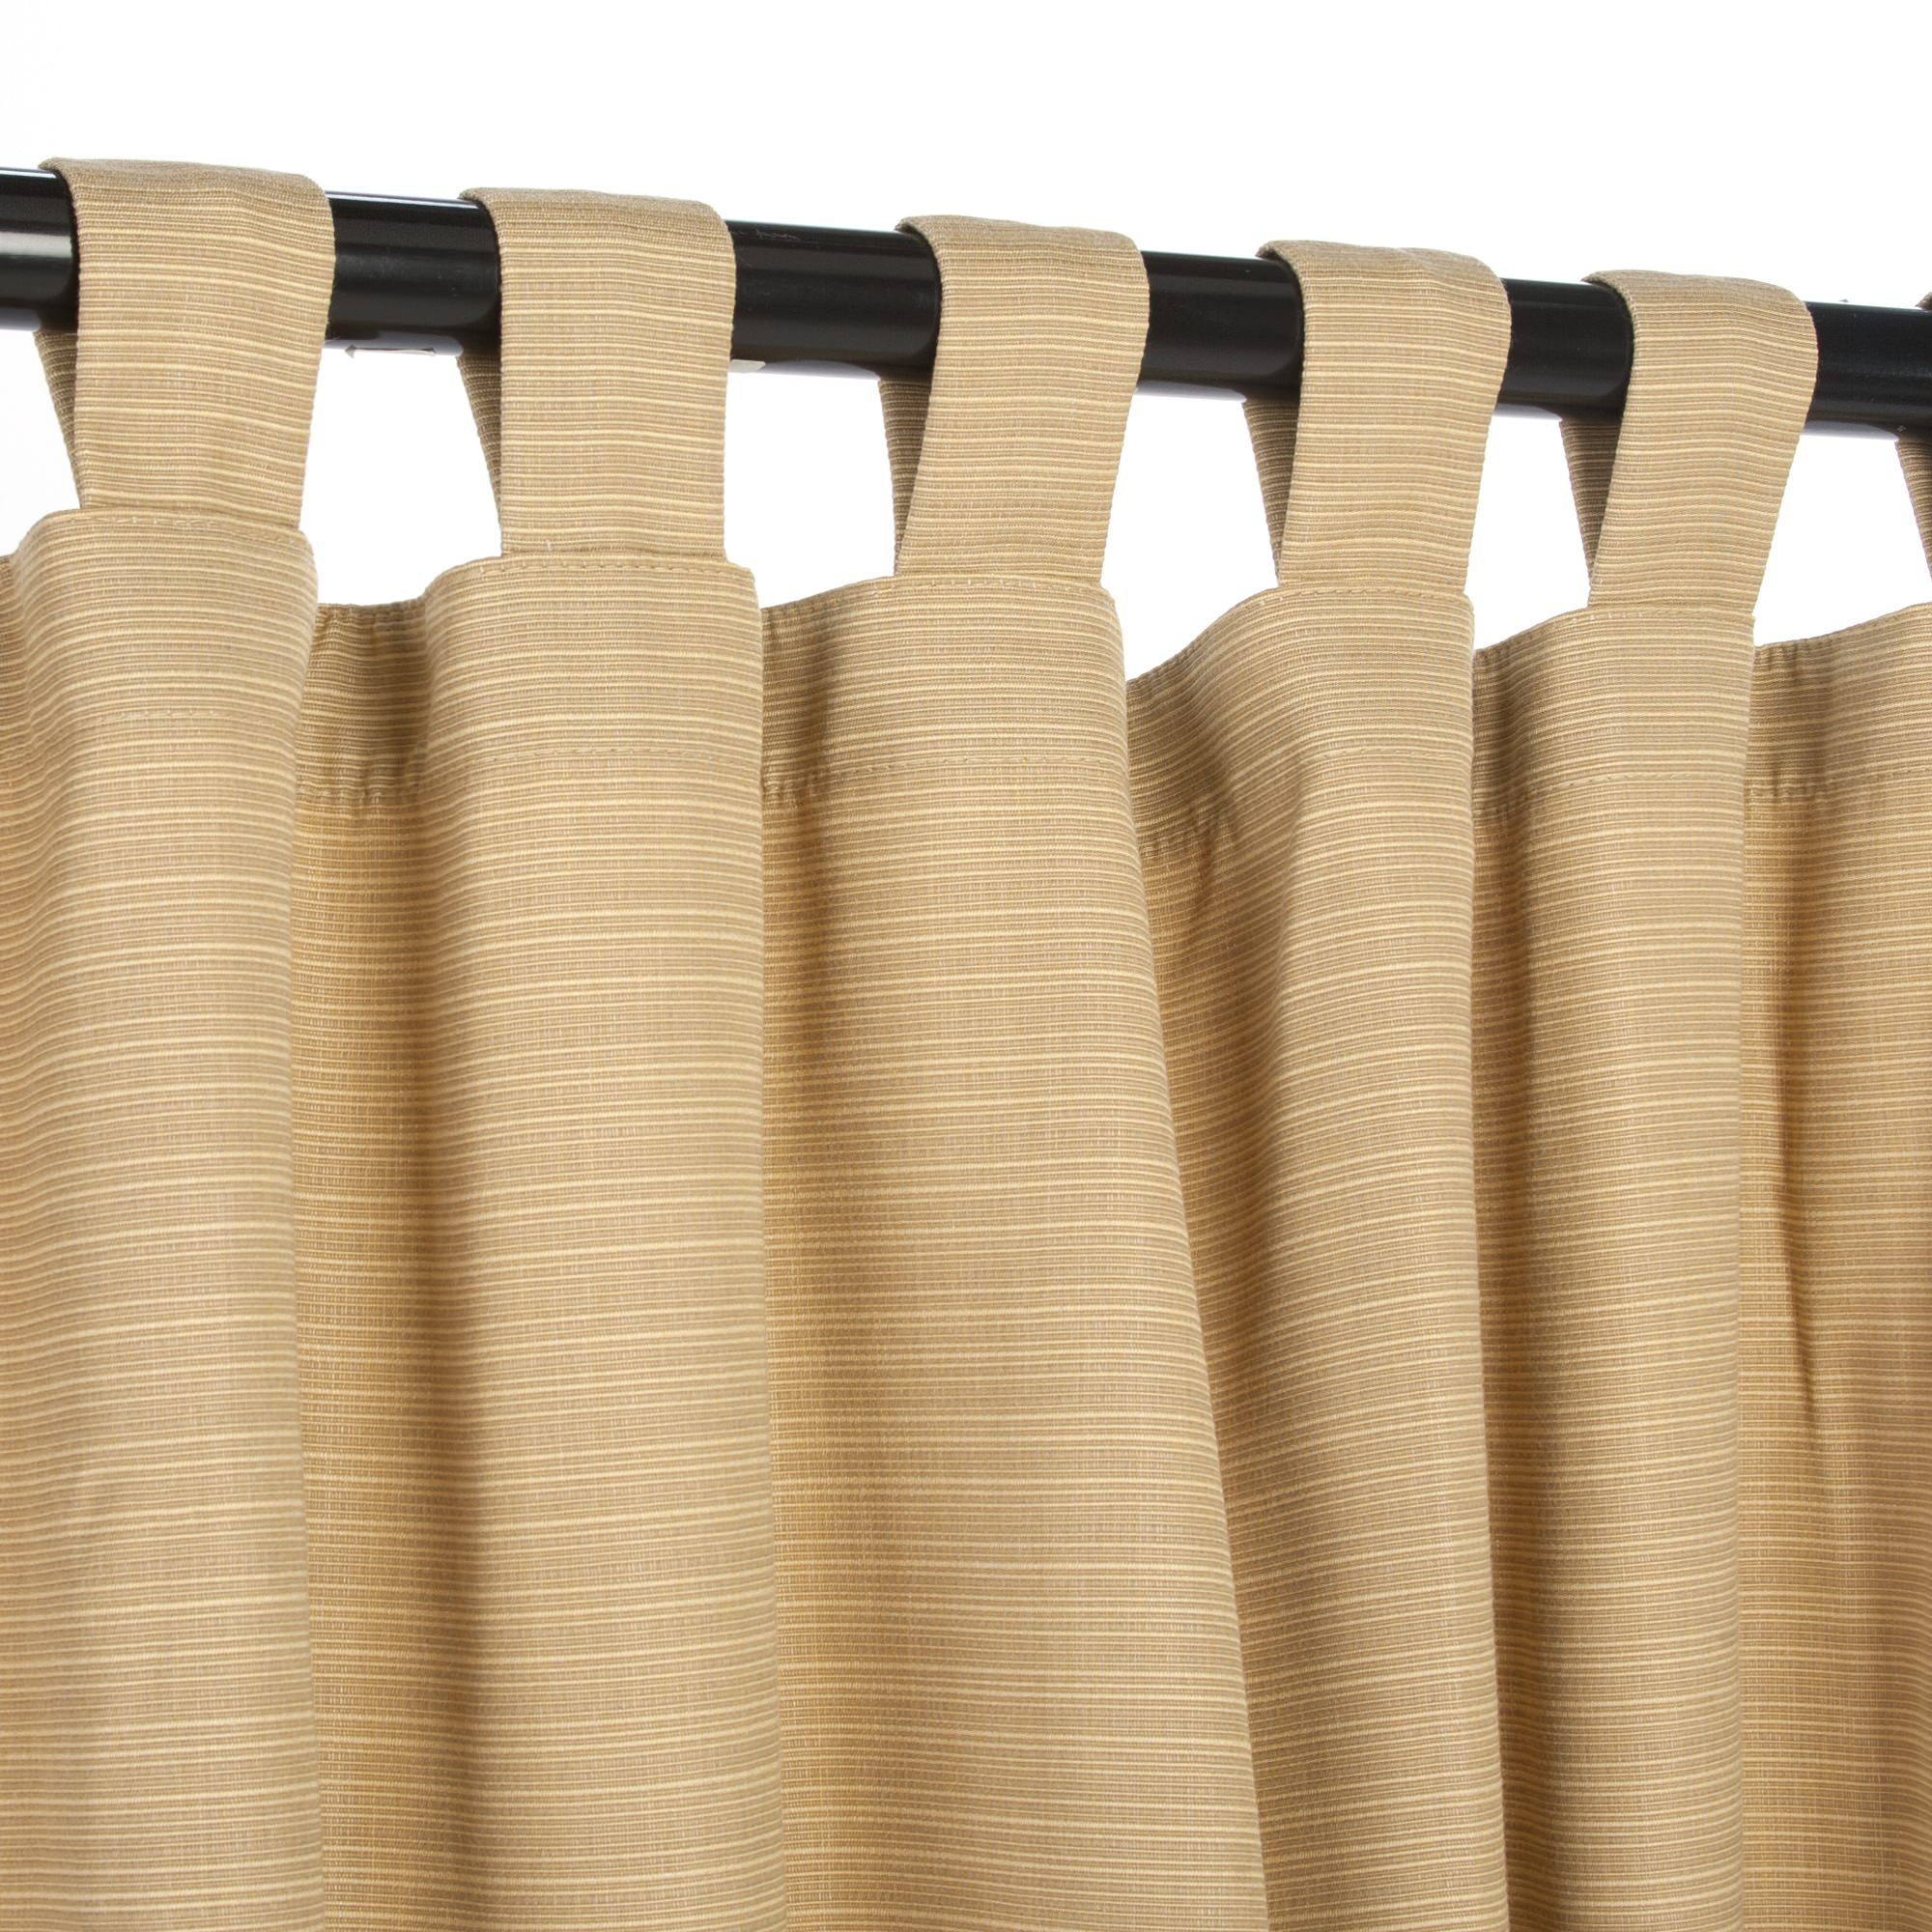 Outdoor bamboo curtains - Dupione Bamboo Sunbrella Outdoor Curtains With Tabs